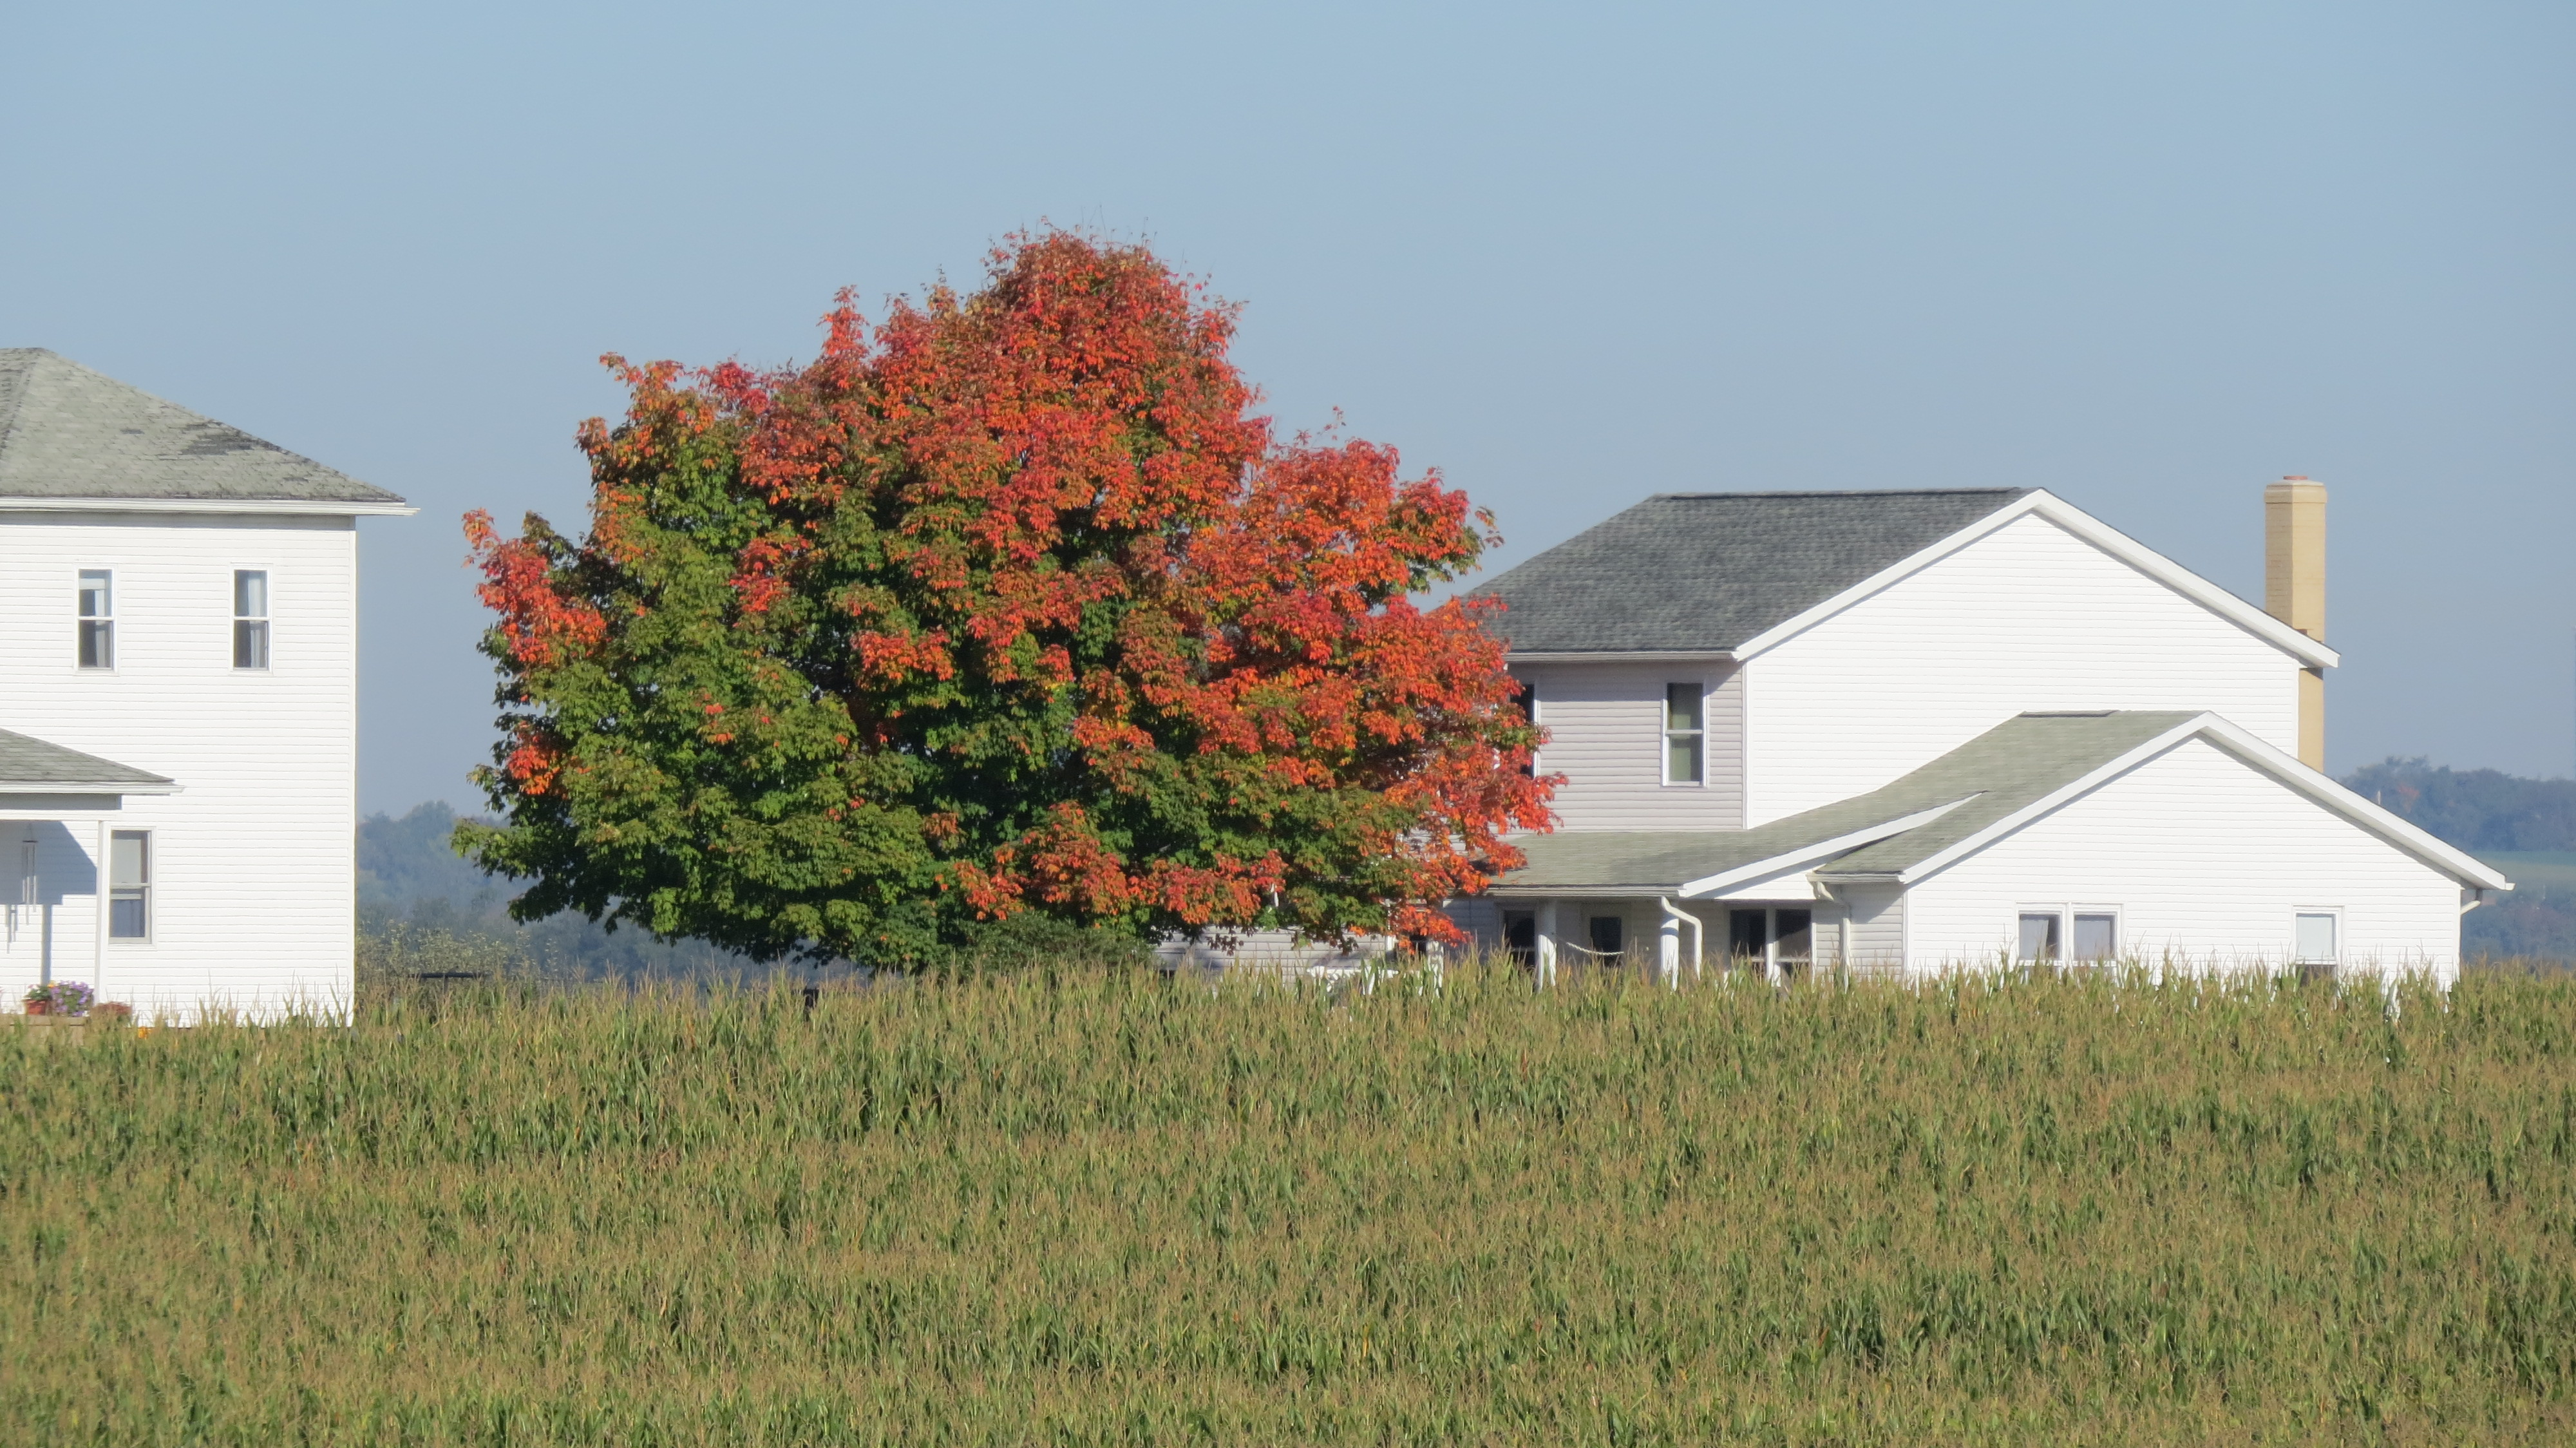 Changing leaves by Bruce Stambaugh